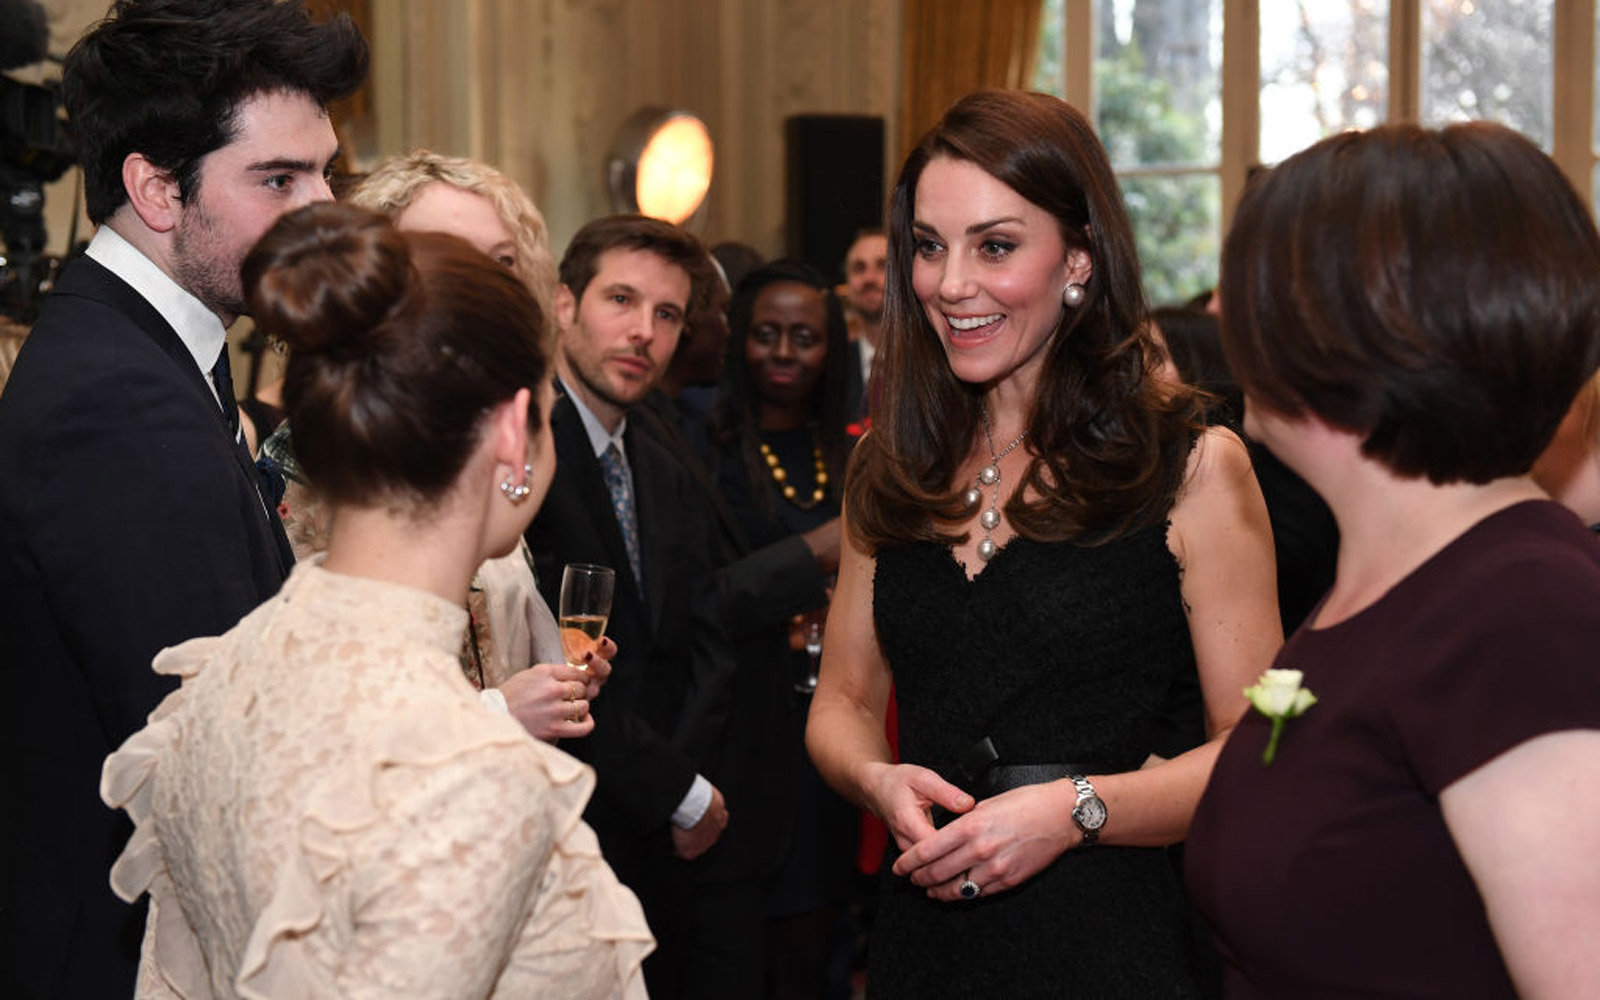 PARIS, PARIS - MARCH 17:  (NO UK SALES FOR 28 DAYS) Catherine,Duchess of Cambridge attends a reception at the British Embassy on March 17, 2017 in Paris, France. The Duke and Duchess are on a two day tour of France.  (Photo by Pool/Samir Hussein/WireImage